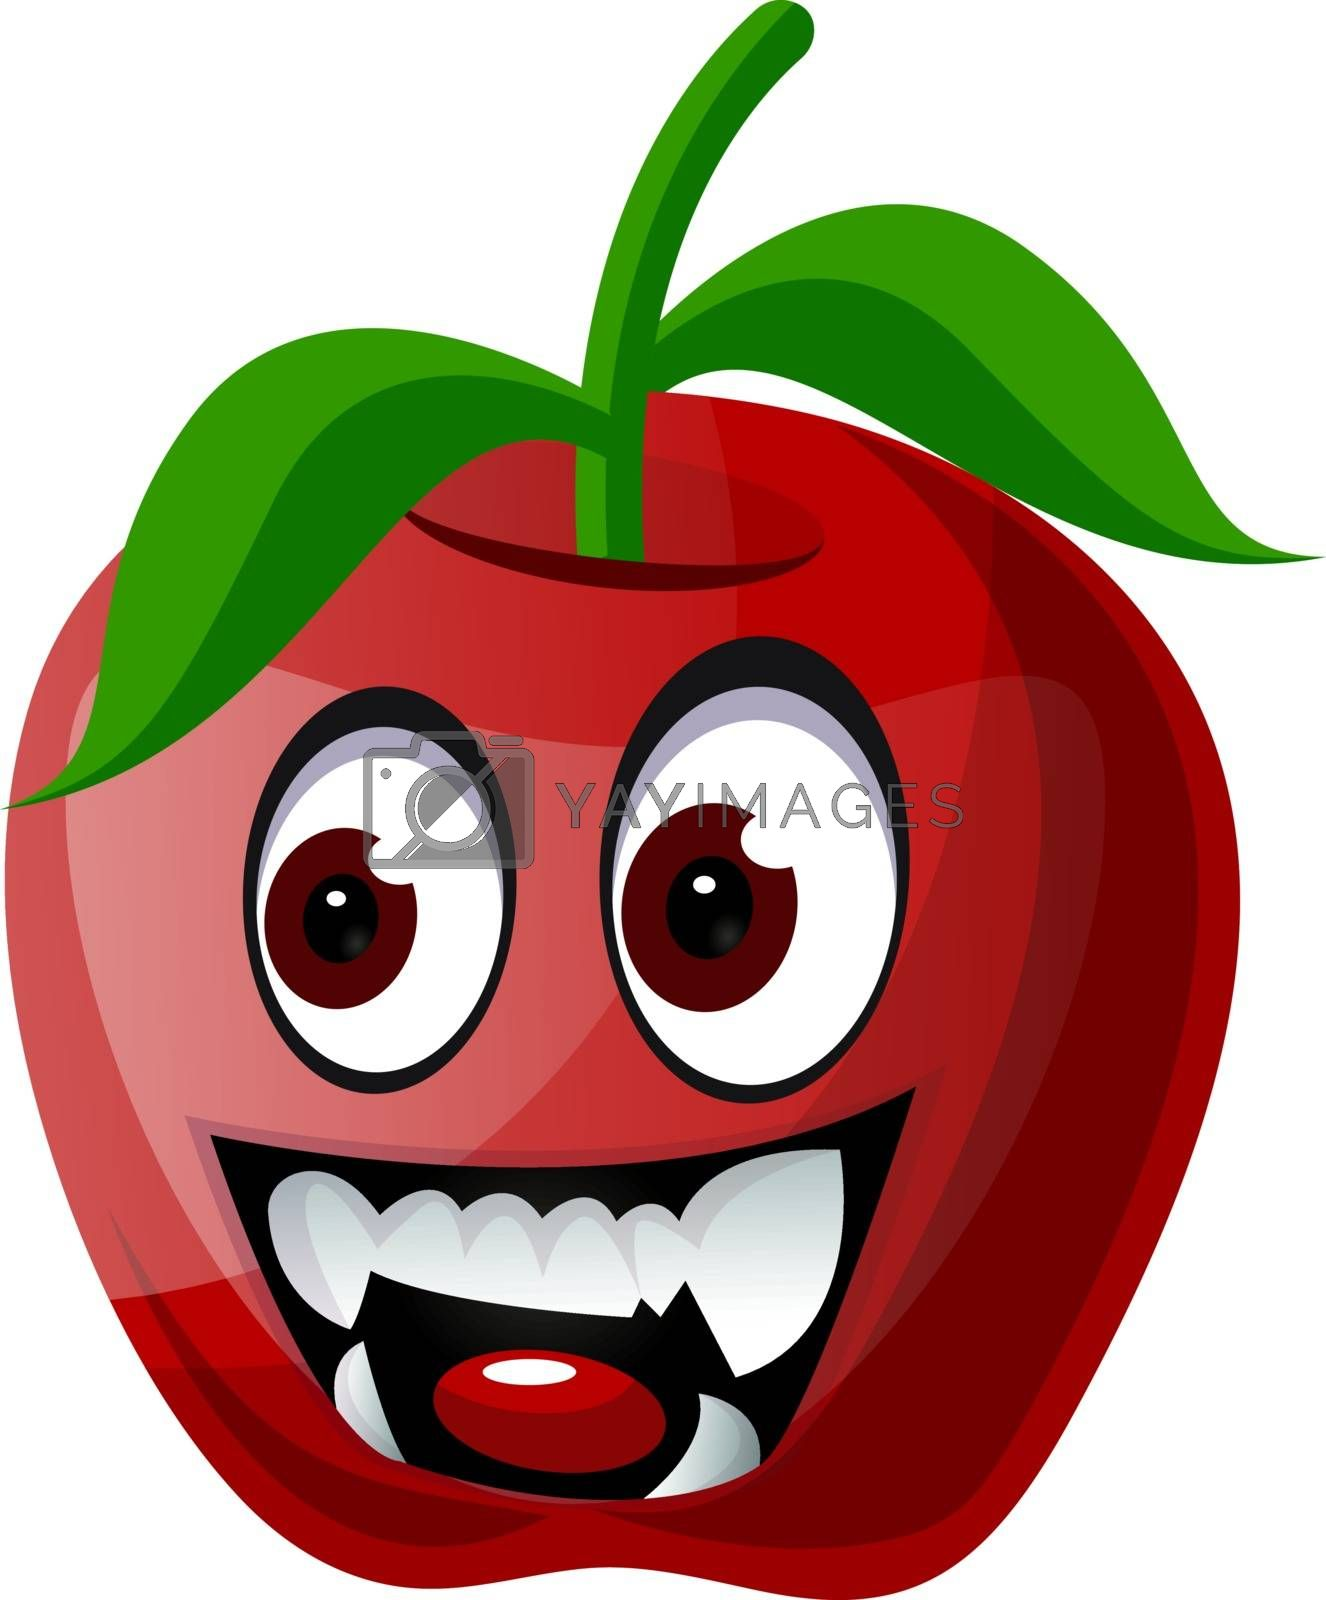 Royalty free image of Red apple with vampire teeth illustration vector on white backgr by Morphart